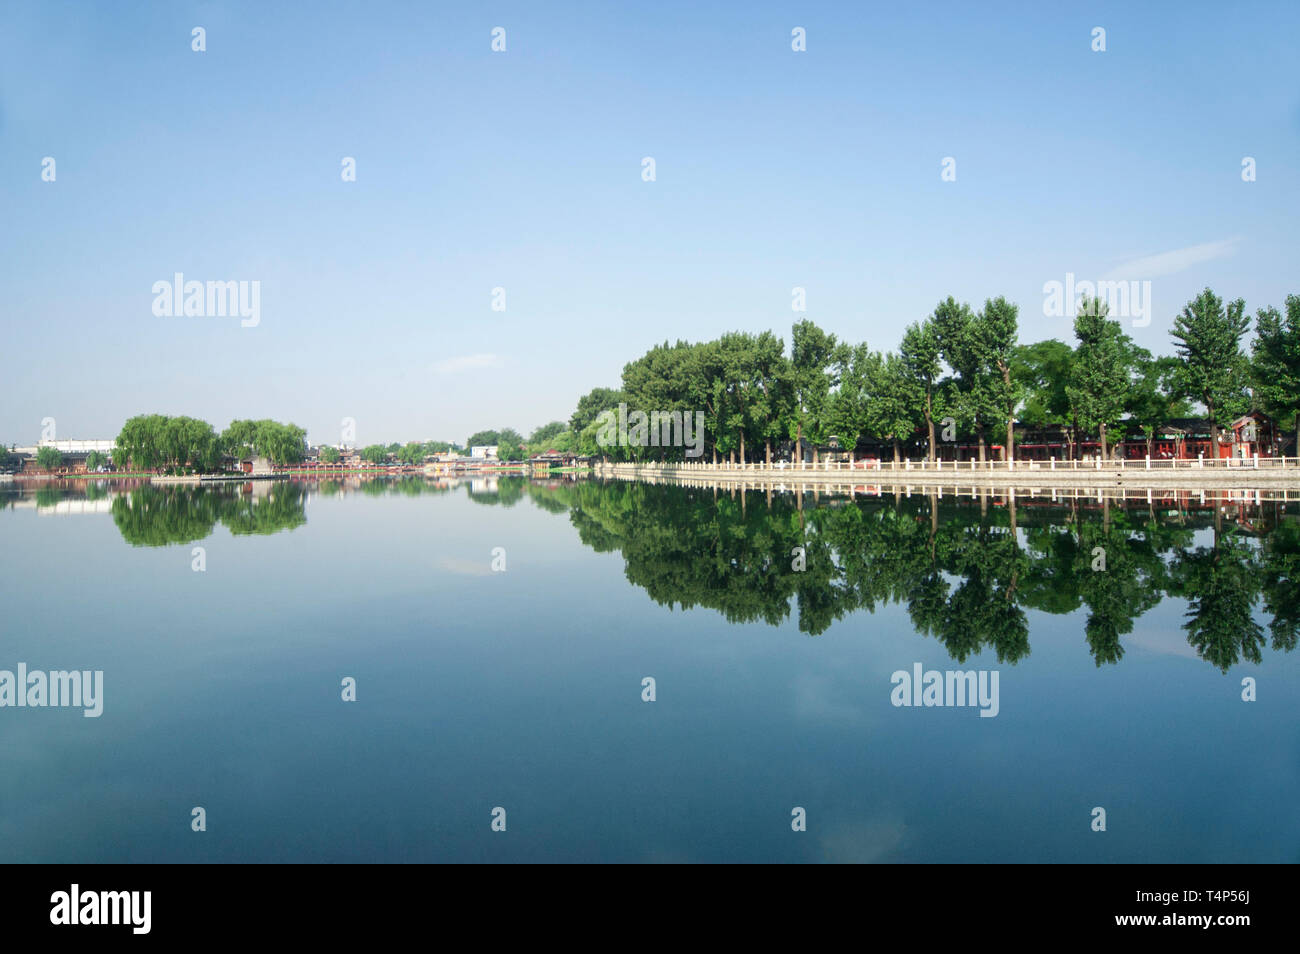 Beijing shichahai scenery Stock Photo